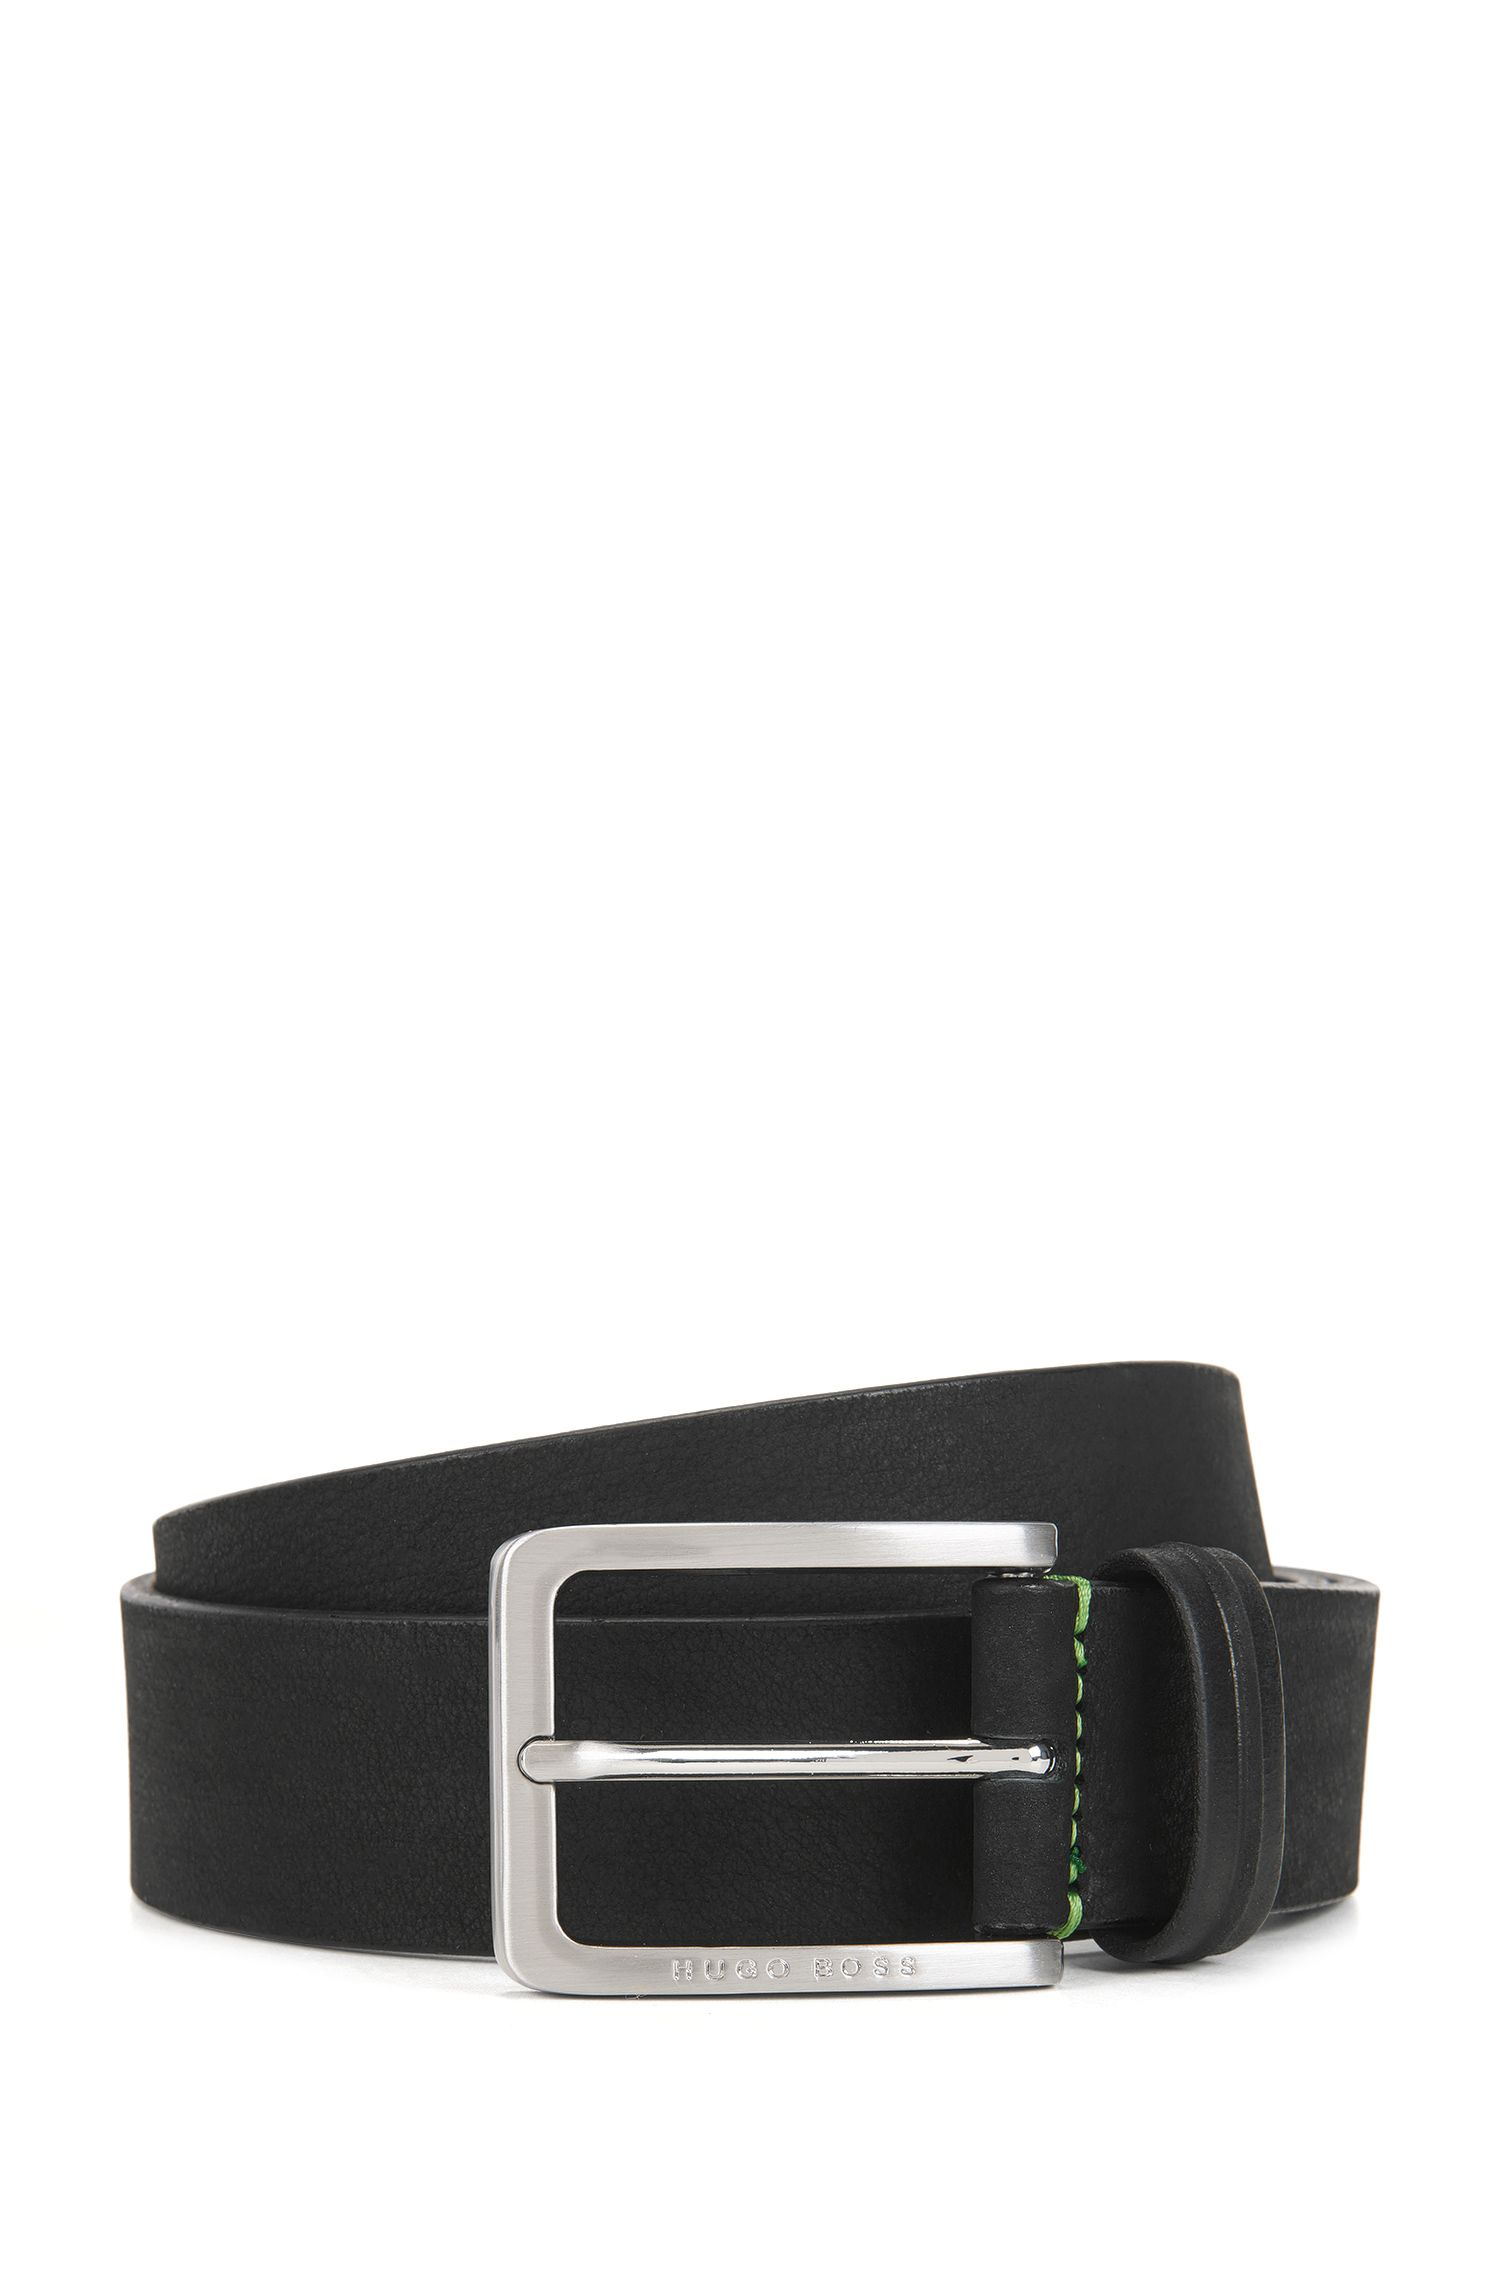 Pin-buckle belt in nubuck leather